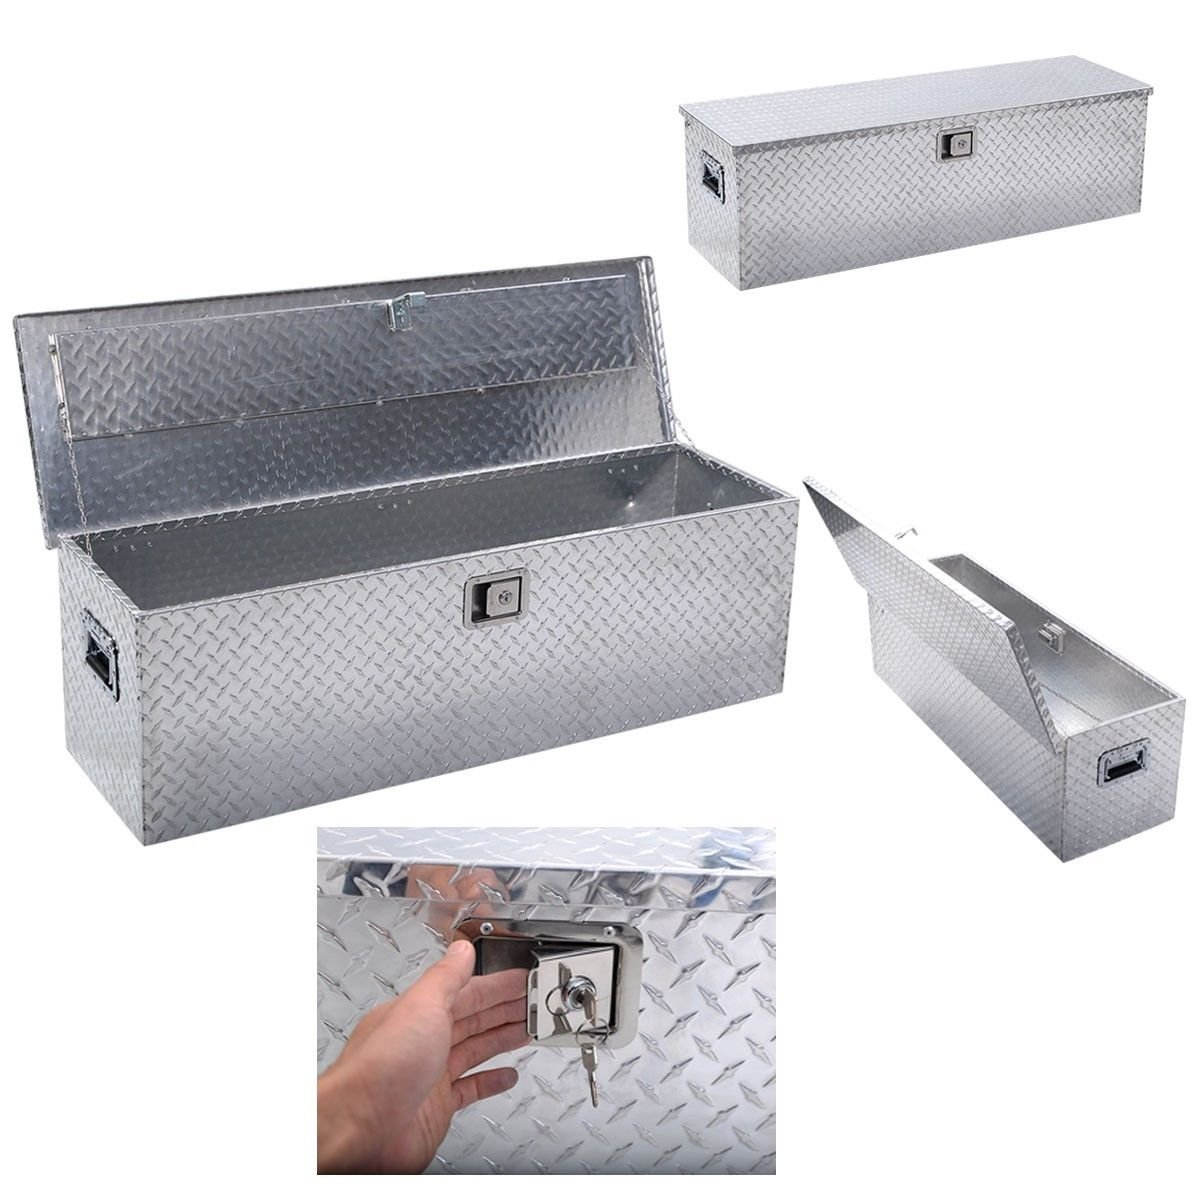 49''x15'' Aluminum Tool Box Tote Storage for Truck Pickup Bed Trailer Tongue W/Lock by Roadstar